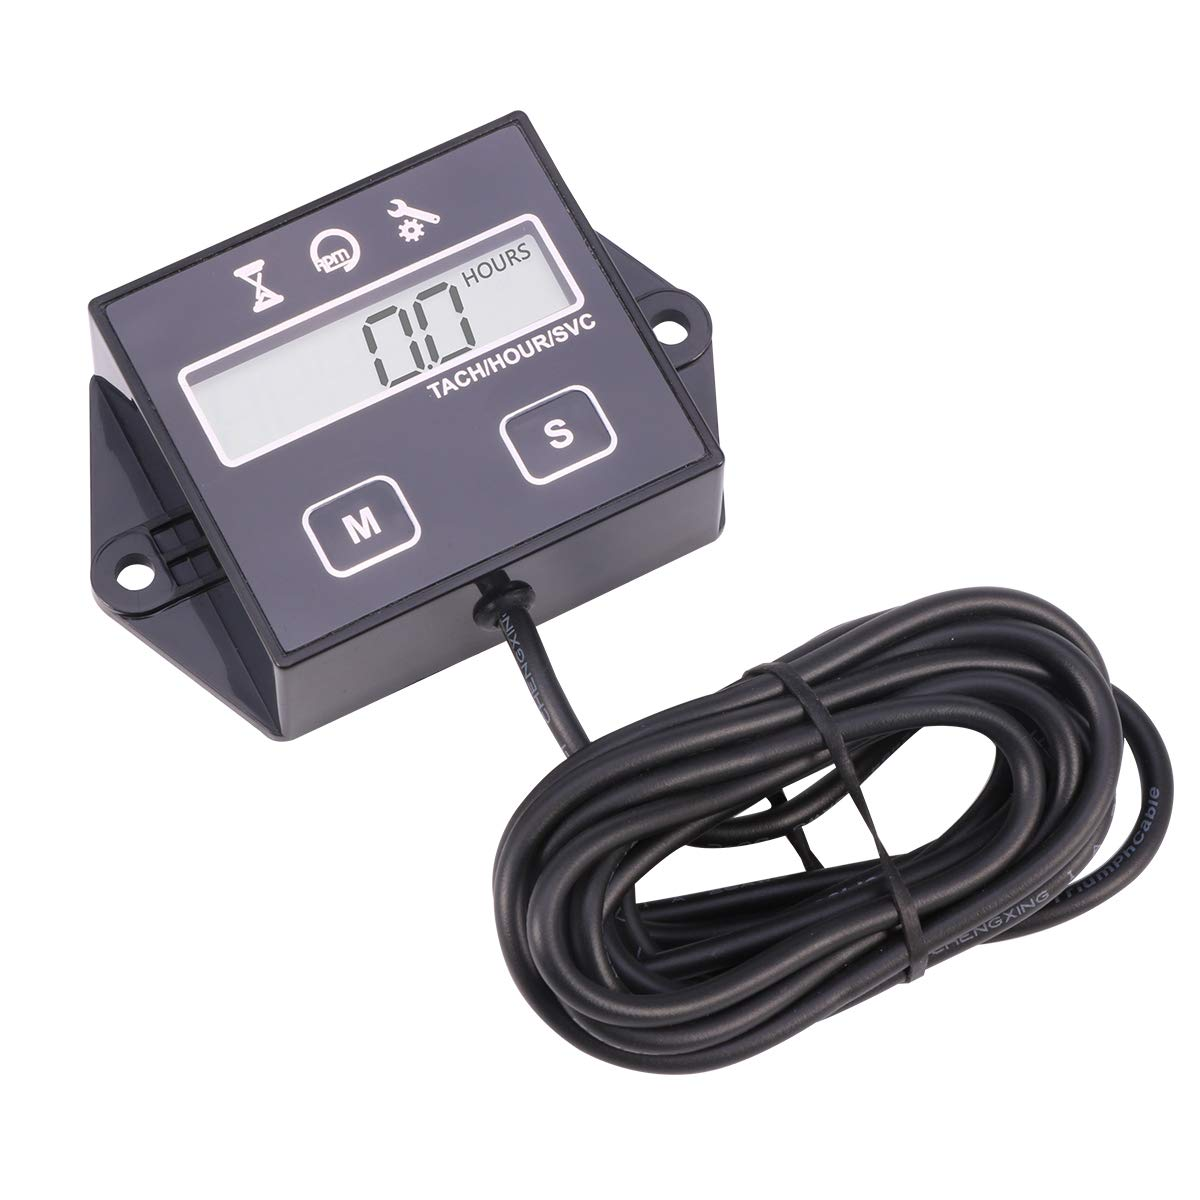 Tacómetro digital Tach para generador de barco pequeño de 2/4 tiempos, cortacésped, motocicleta, motocross, quads, Non-replaceable Battery without ...